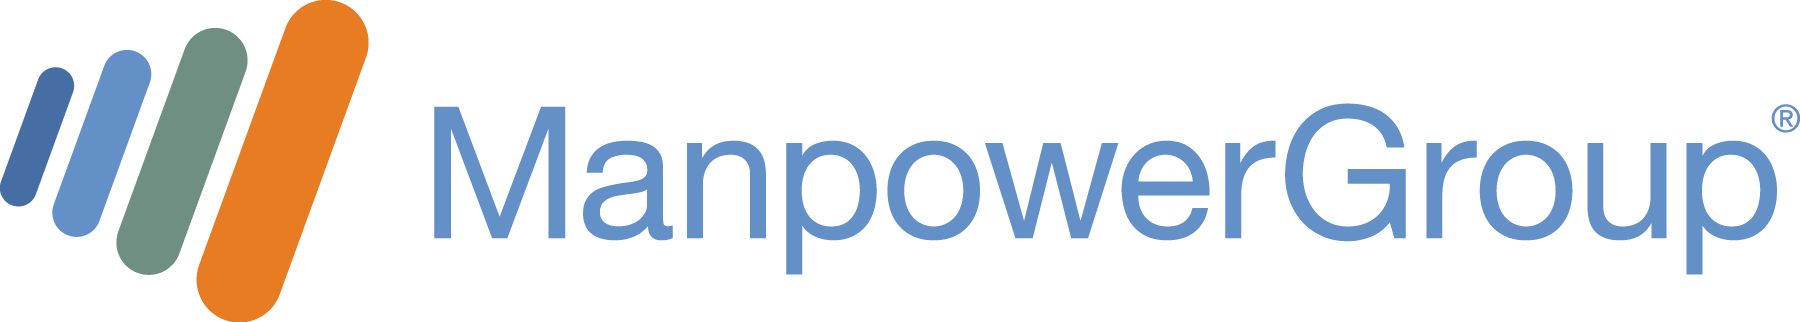 Learn more about the ManpowerGroup family of brands